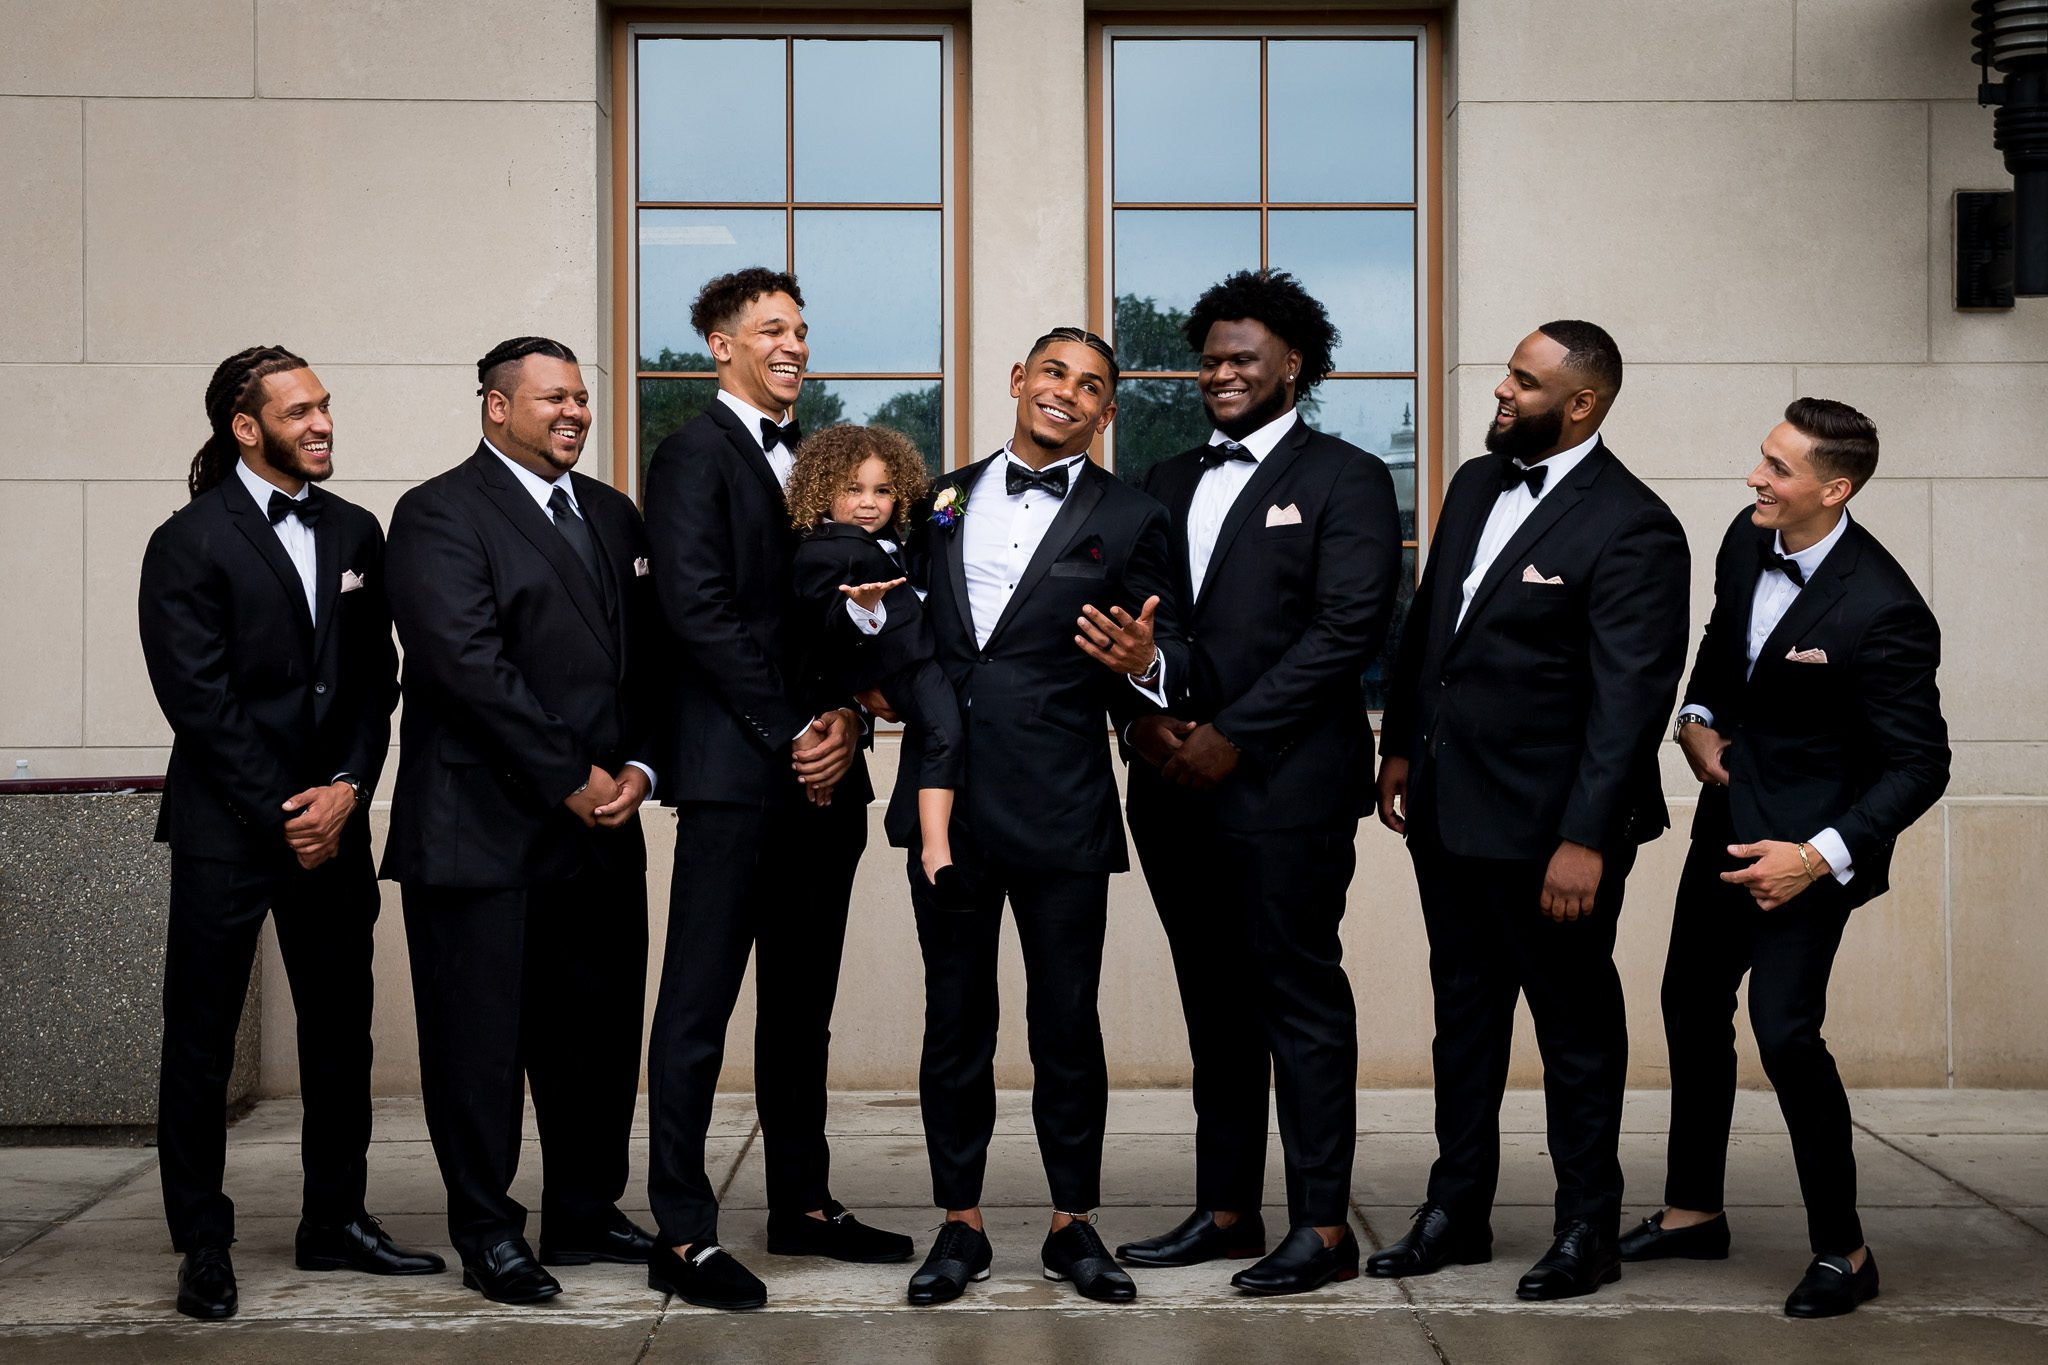 Groomsmen pose together and laugh during a photo stop before returning to their backyard wedding reception.